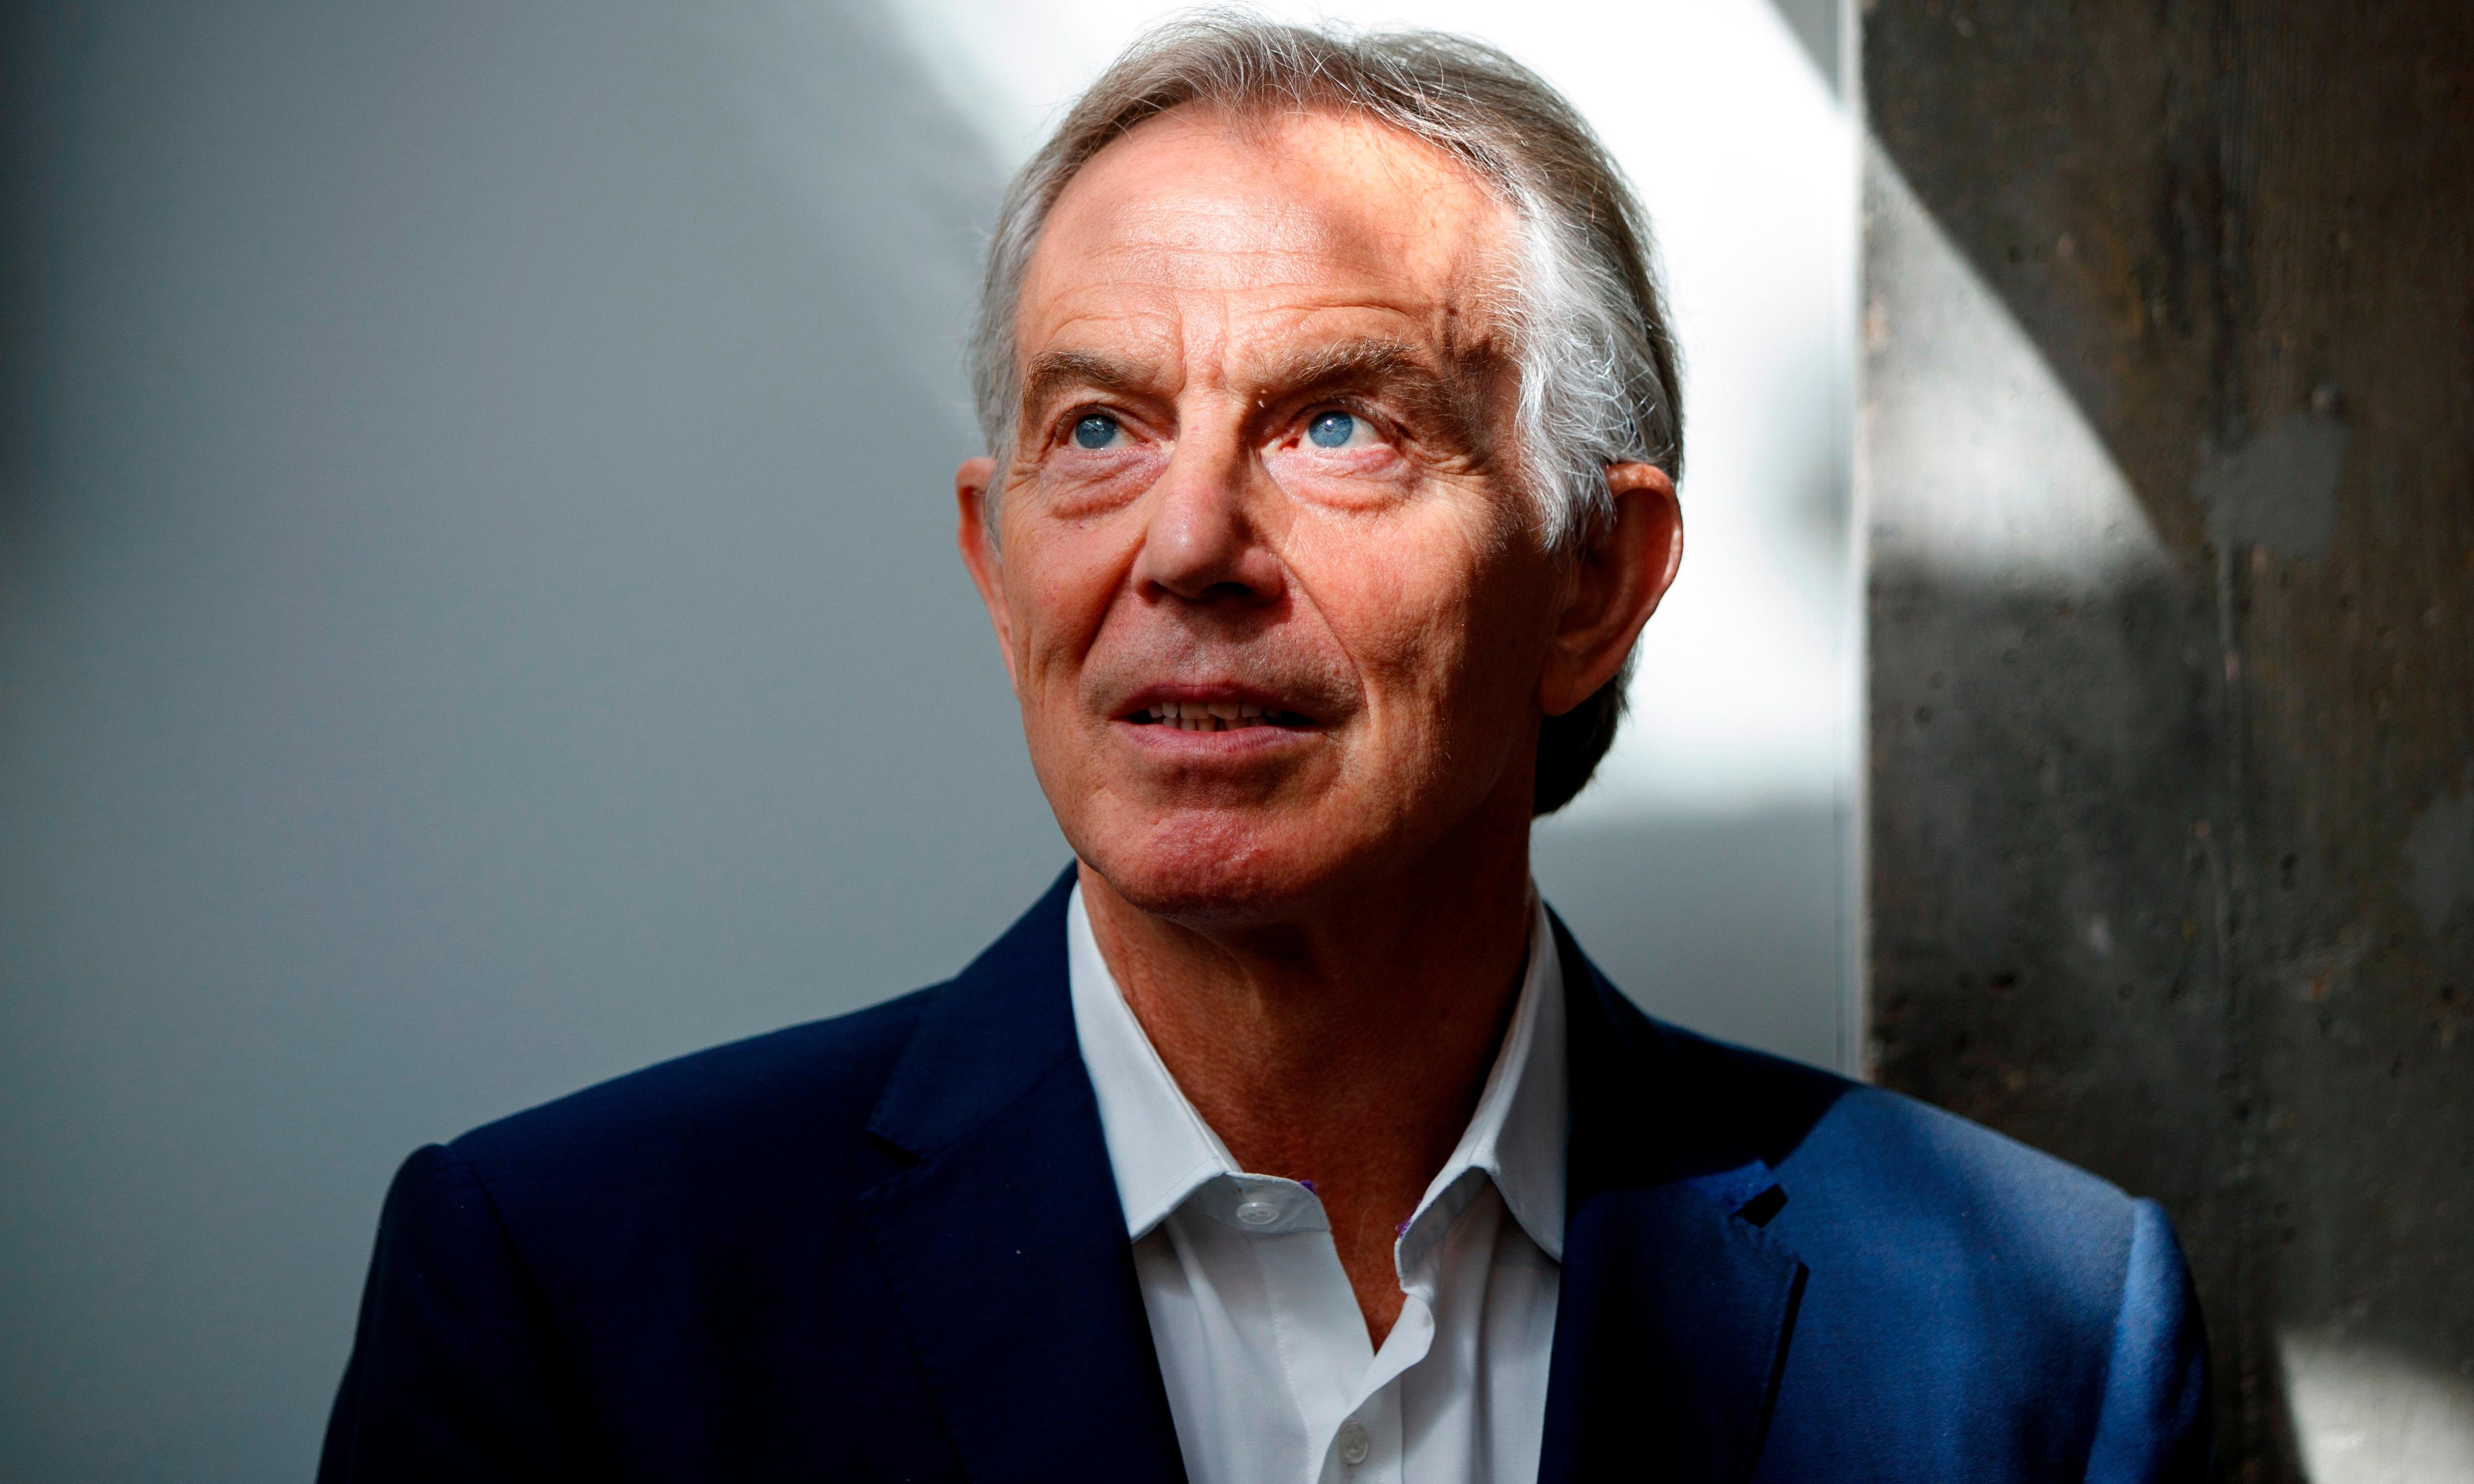 Tony Blair and a positive vision of Africa